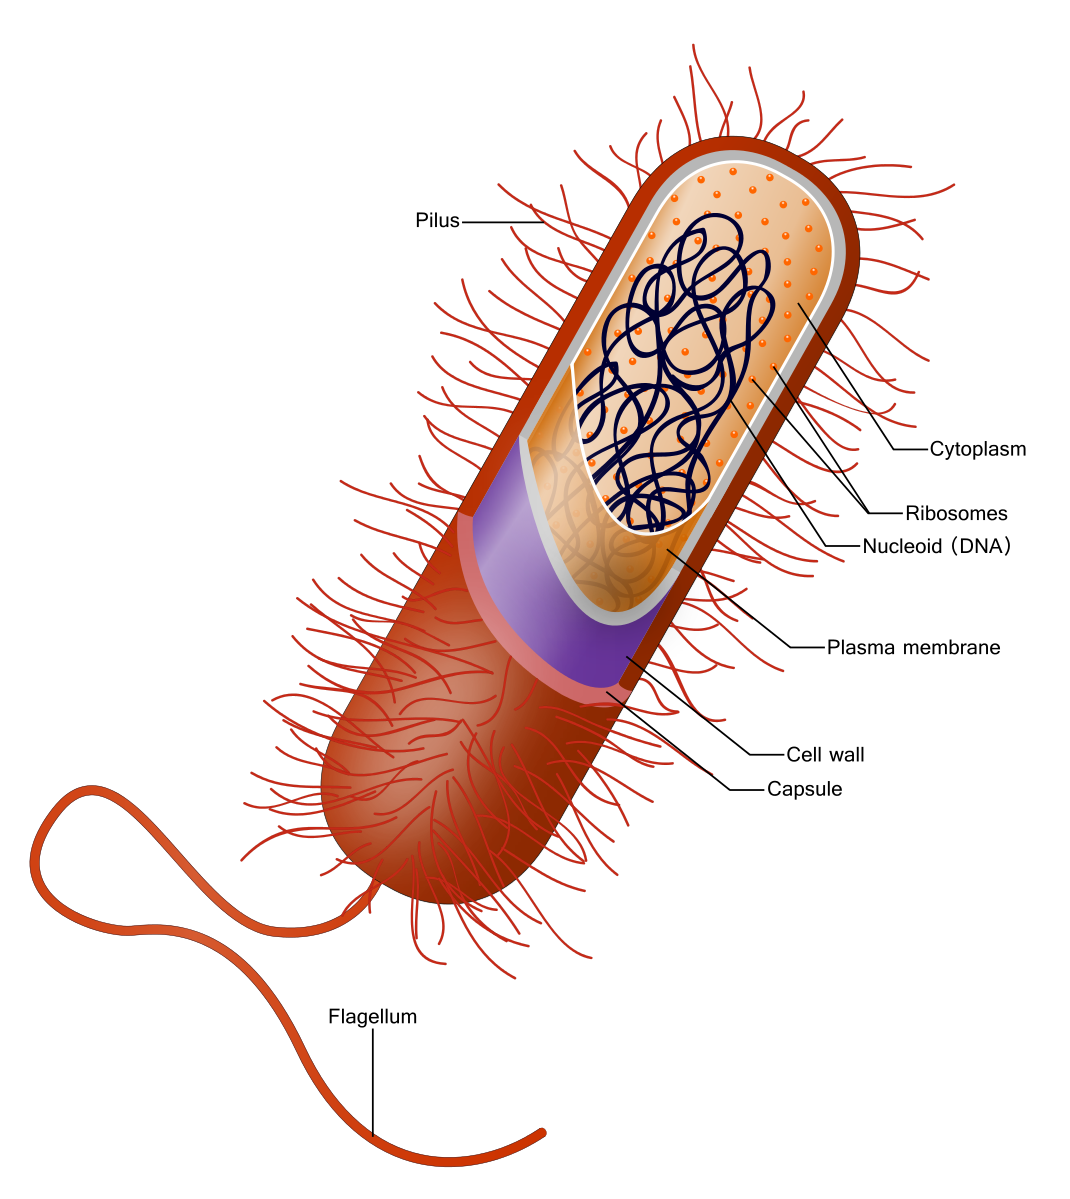 Red bacteria illustration marks each of the parts, internal and external, such as the whip tale (flagellum), the hair-like pilus growing off the surface, the capsule, cell wall, plasma membrane, nucleoid, ribosomes, and cytoplasm